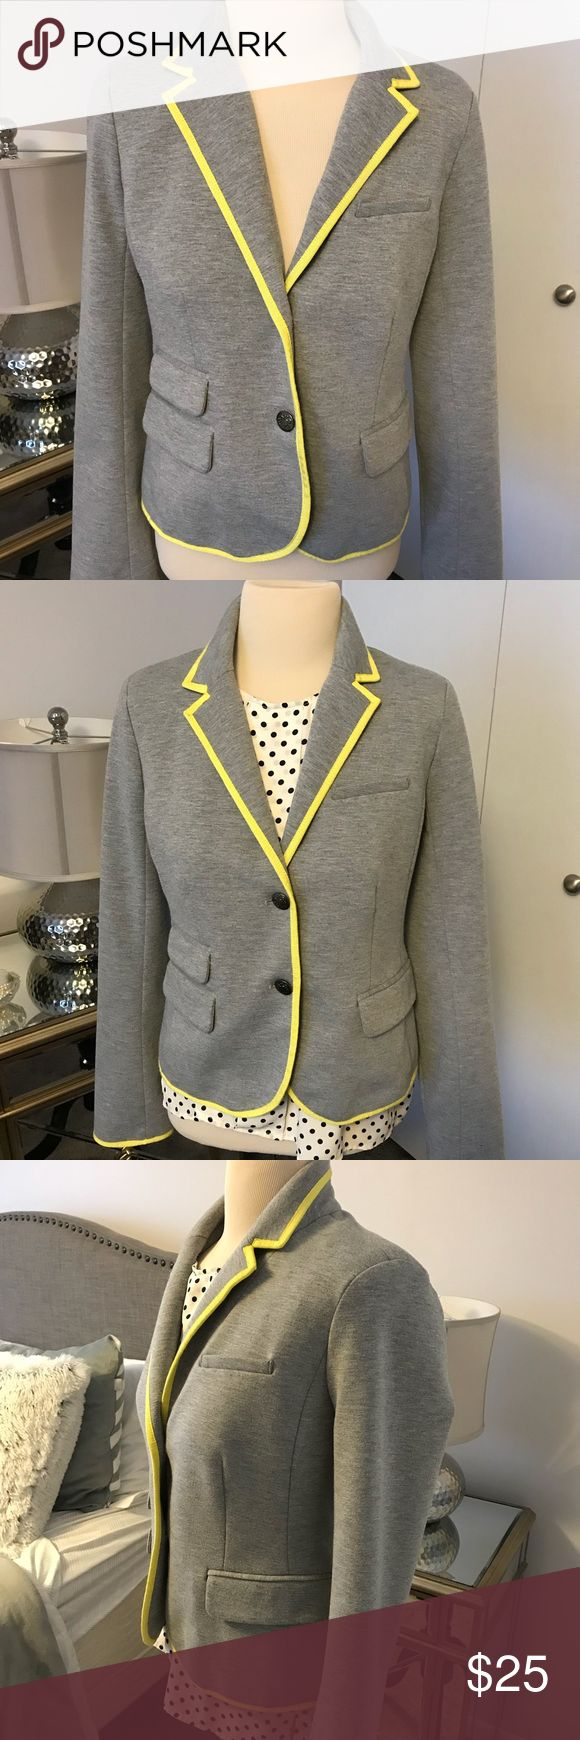 GAP Academy Jersey blazer Cute Gap jacket, so versatile, wear with anything! Dressed up or down, it looks casual or chic. GAP Jackets & Coats Blazers